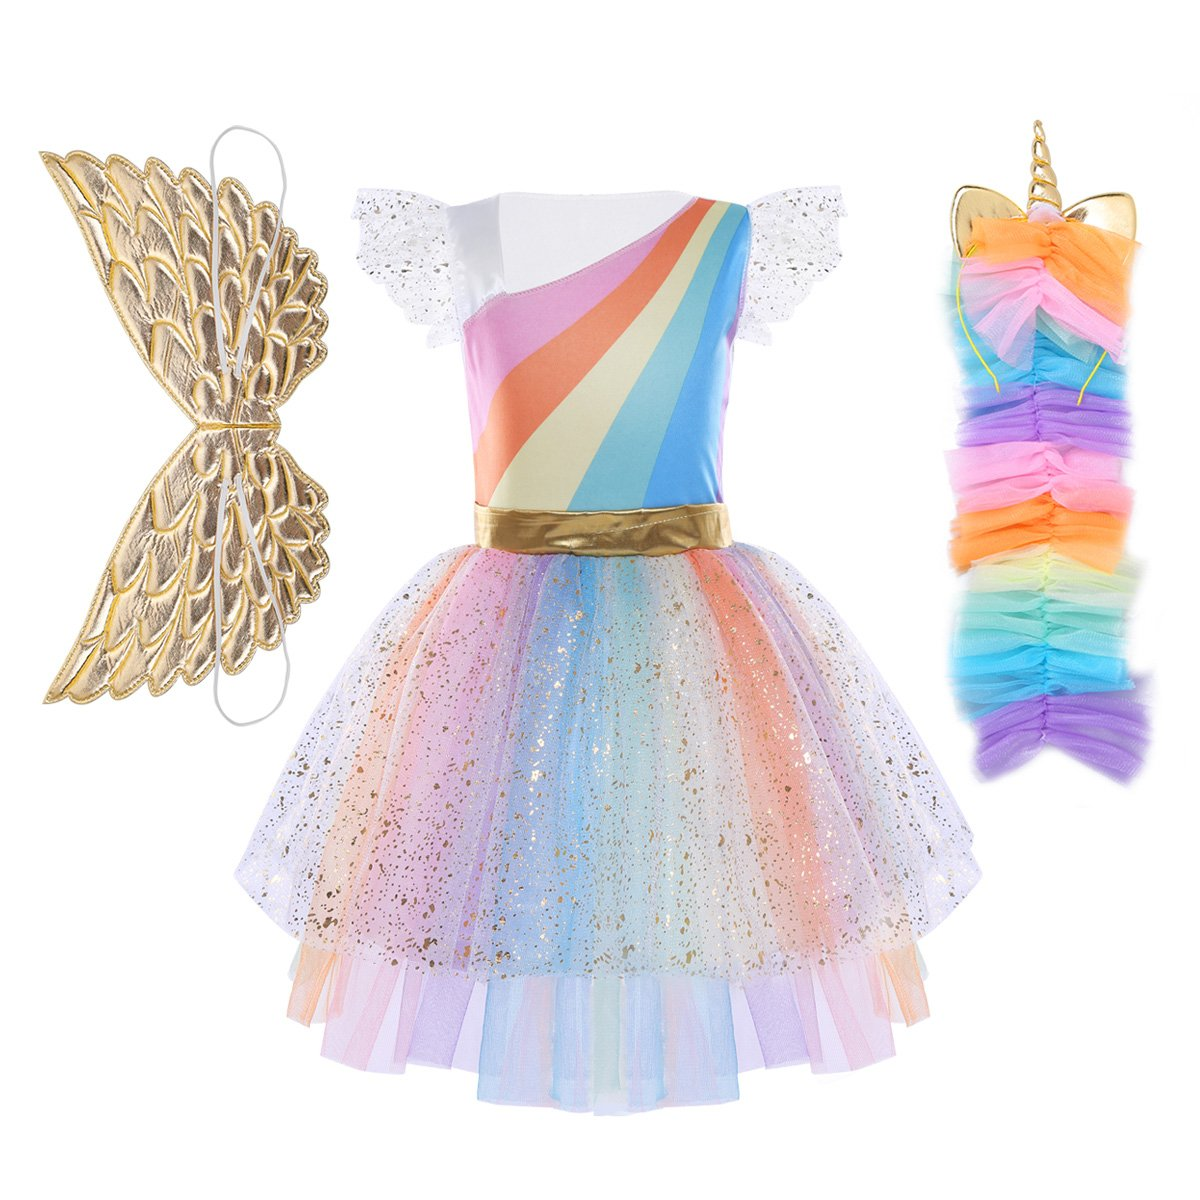 FEESHOW Kids Girls Rainbow Tutu Dress with Headband Halloween Cosplay Costumes Party Outfit Fancy Dress up Clothes Rainbow (3pcs set) 7-8